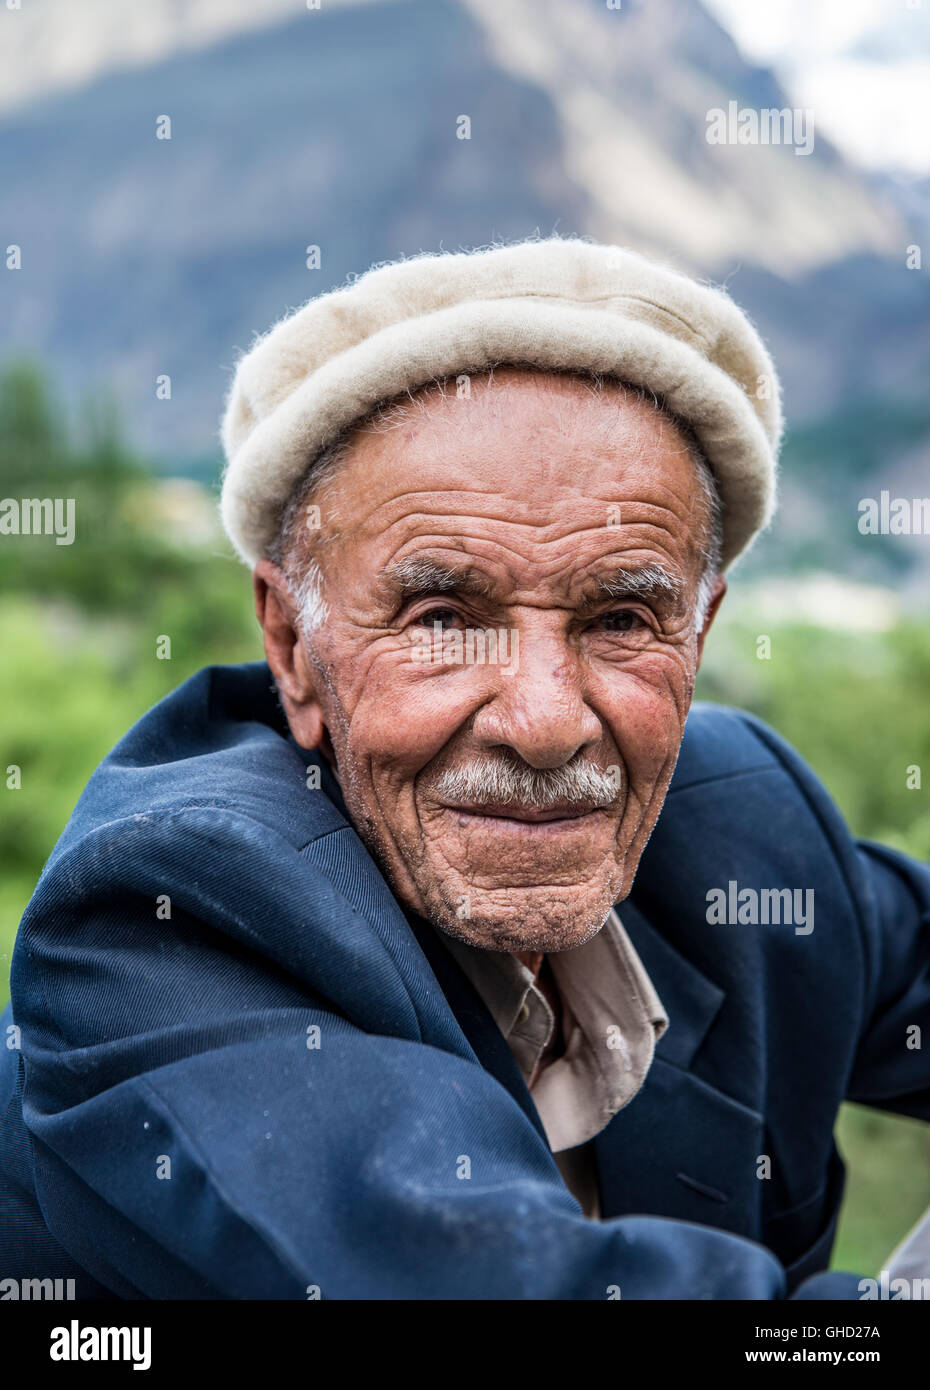 Man with moustache wearing traditional Hunza cap in Karimabad, northern Pakistan - Stock Image